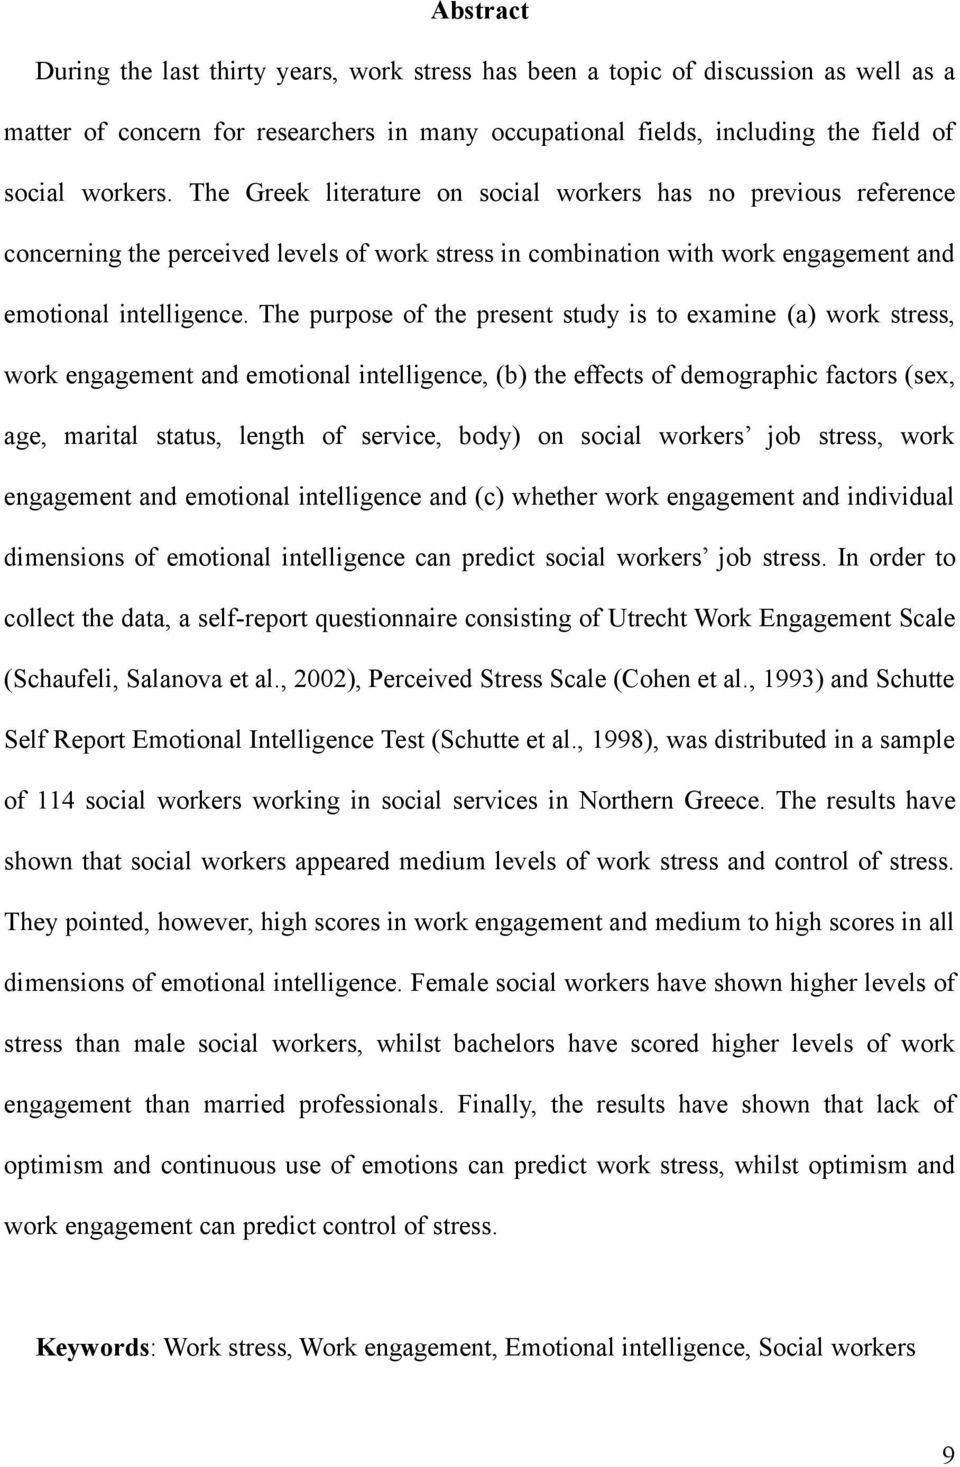 The purpose of the present study is to examine (a) work stress, work engagement and emotional intelligence, (b) the effects of demographic factors (sex, age, marital status, length of service, body)